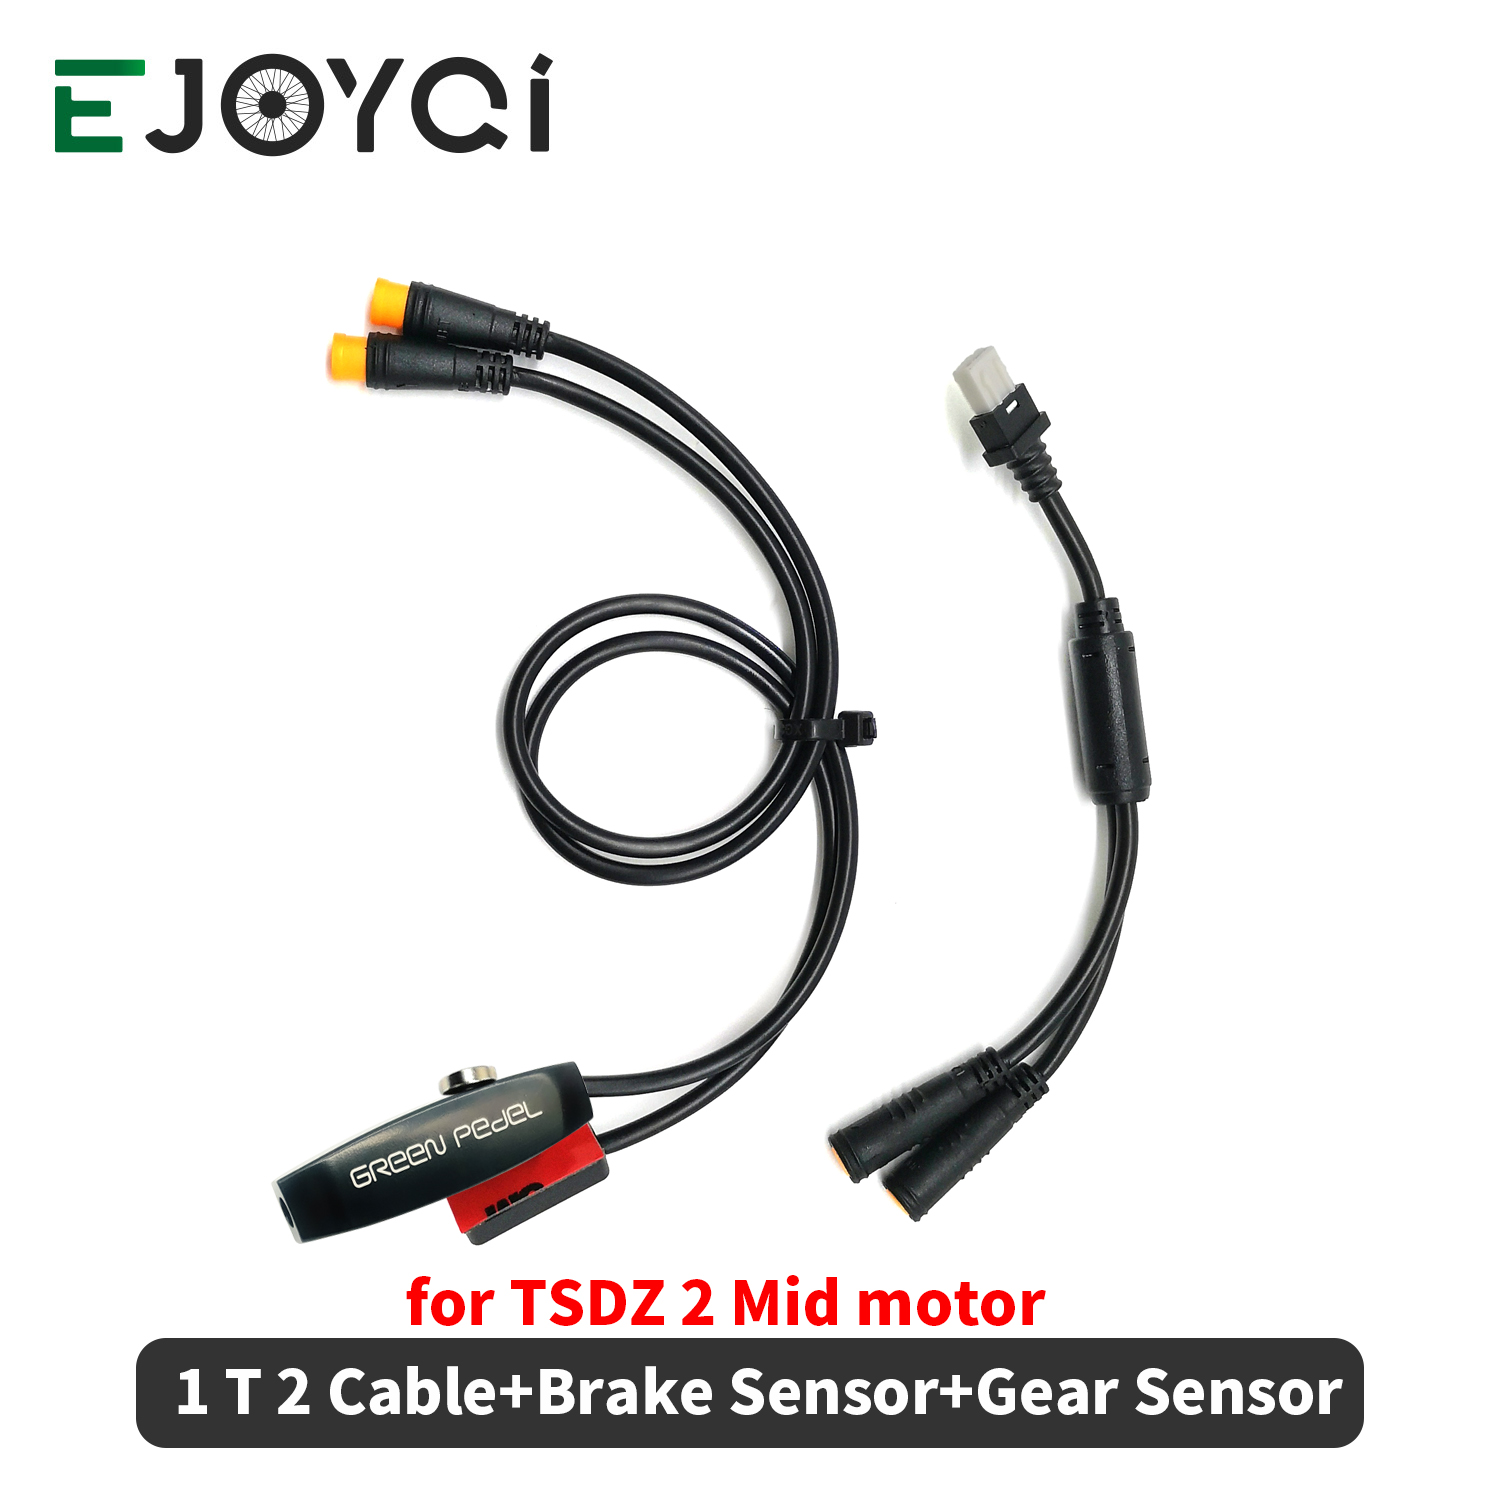 TSDZ 2 <font><b>Gear</b></font> Sensor Shift Sensor Brake Sensor Y-Splitter 1 T 2 Cable E Bike Replacement <font><b>Gear</b></font> Sensor for <font><b>TongSheng</b></font> Mid Drive Kit image